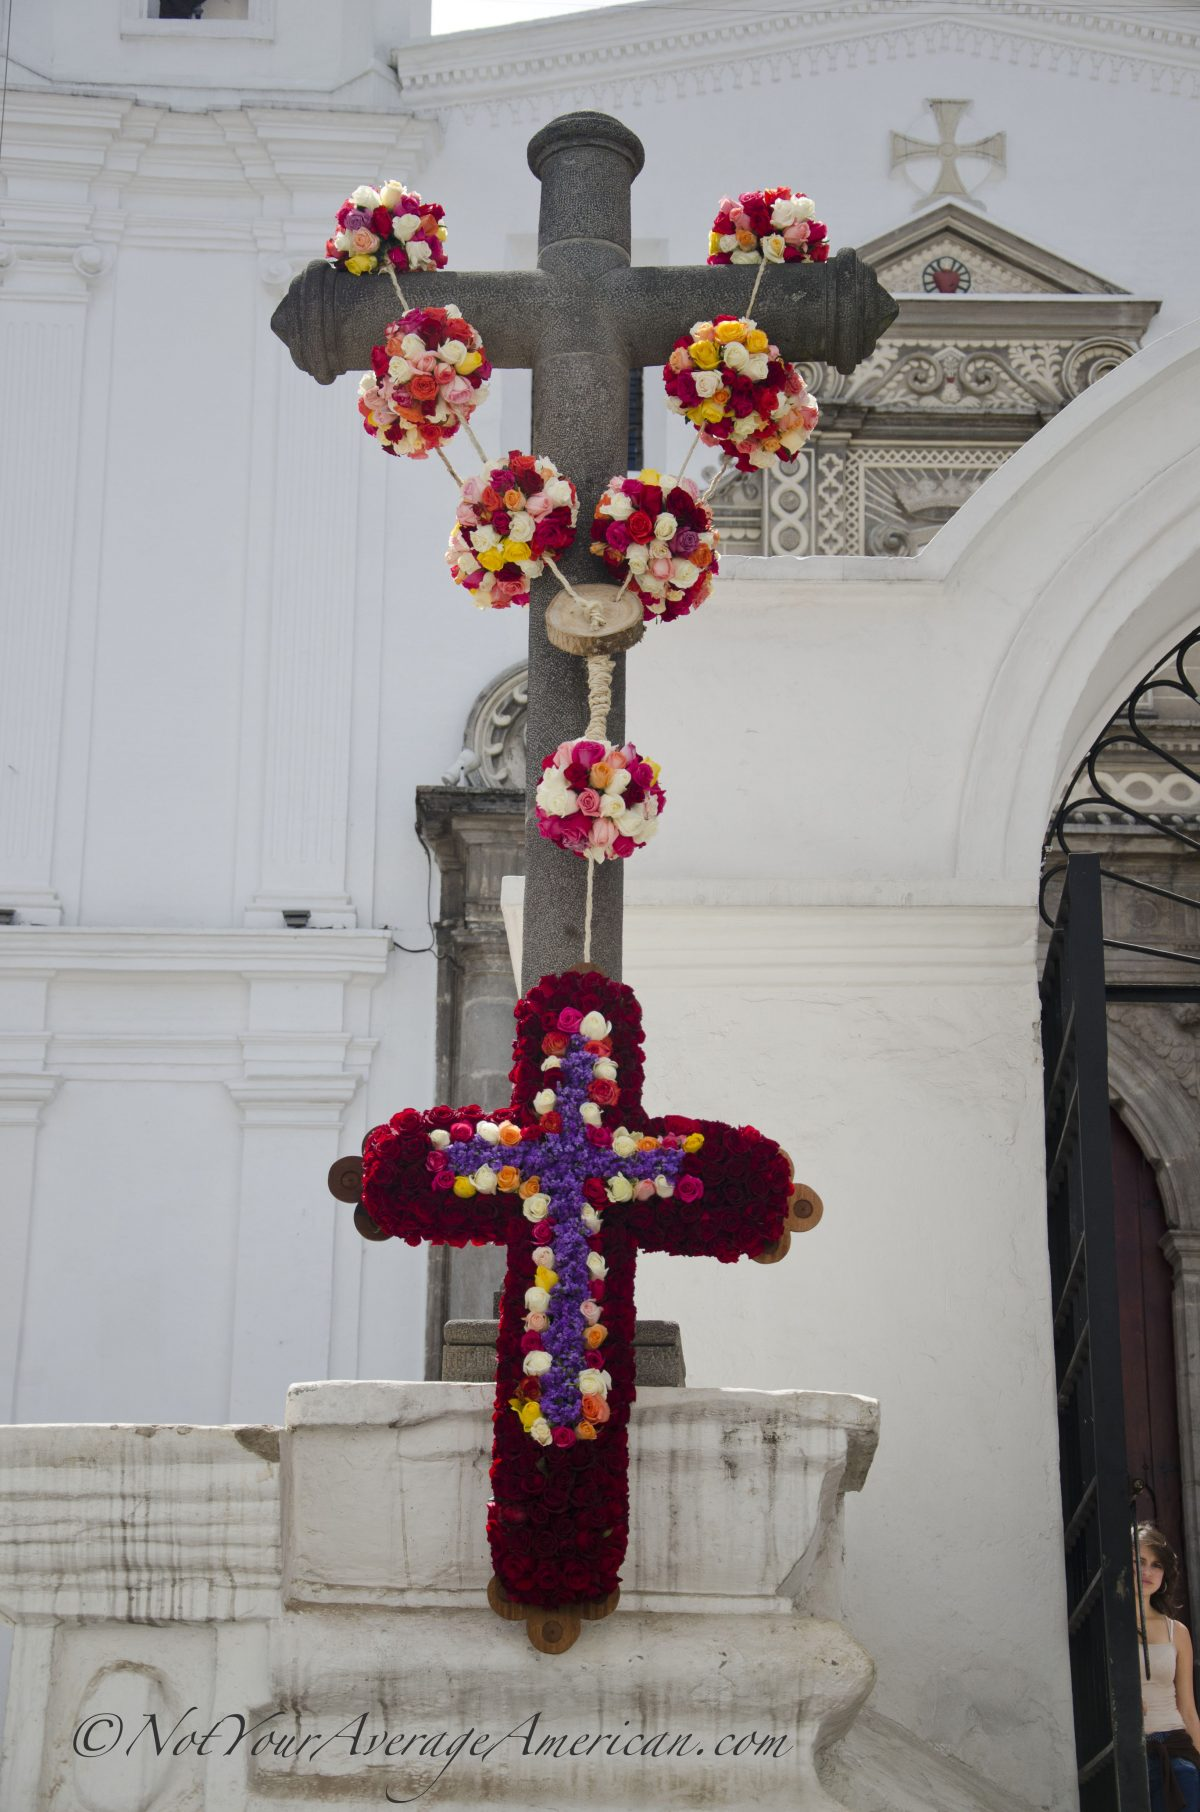 The rose draped cross in the afternoon light in front of the Convento del Carmen Alto | ©Angela Drake